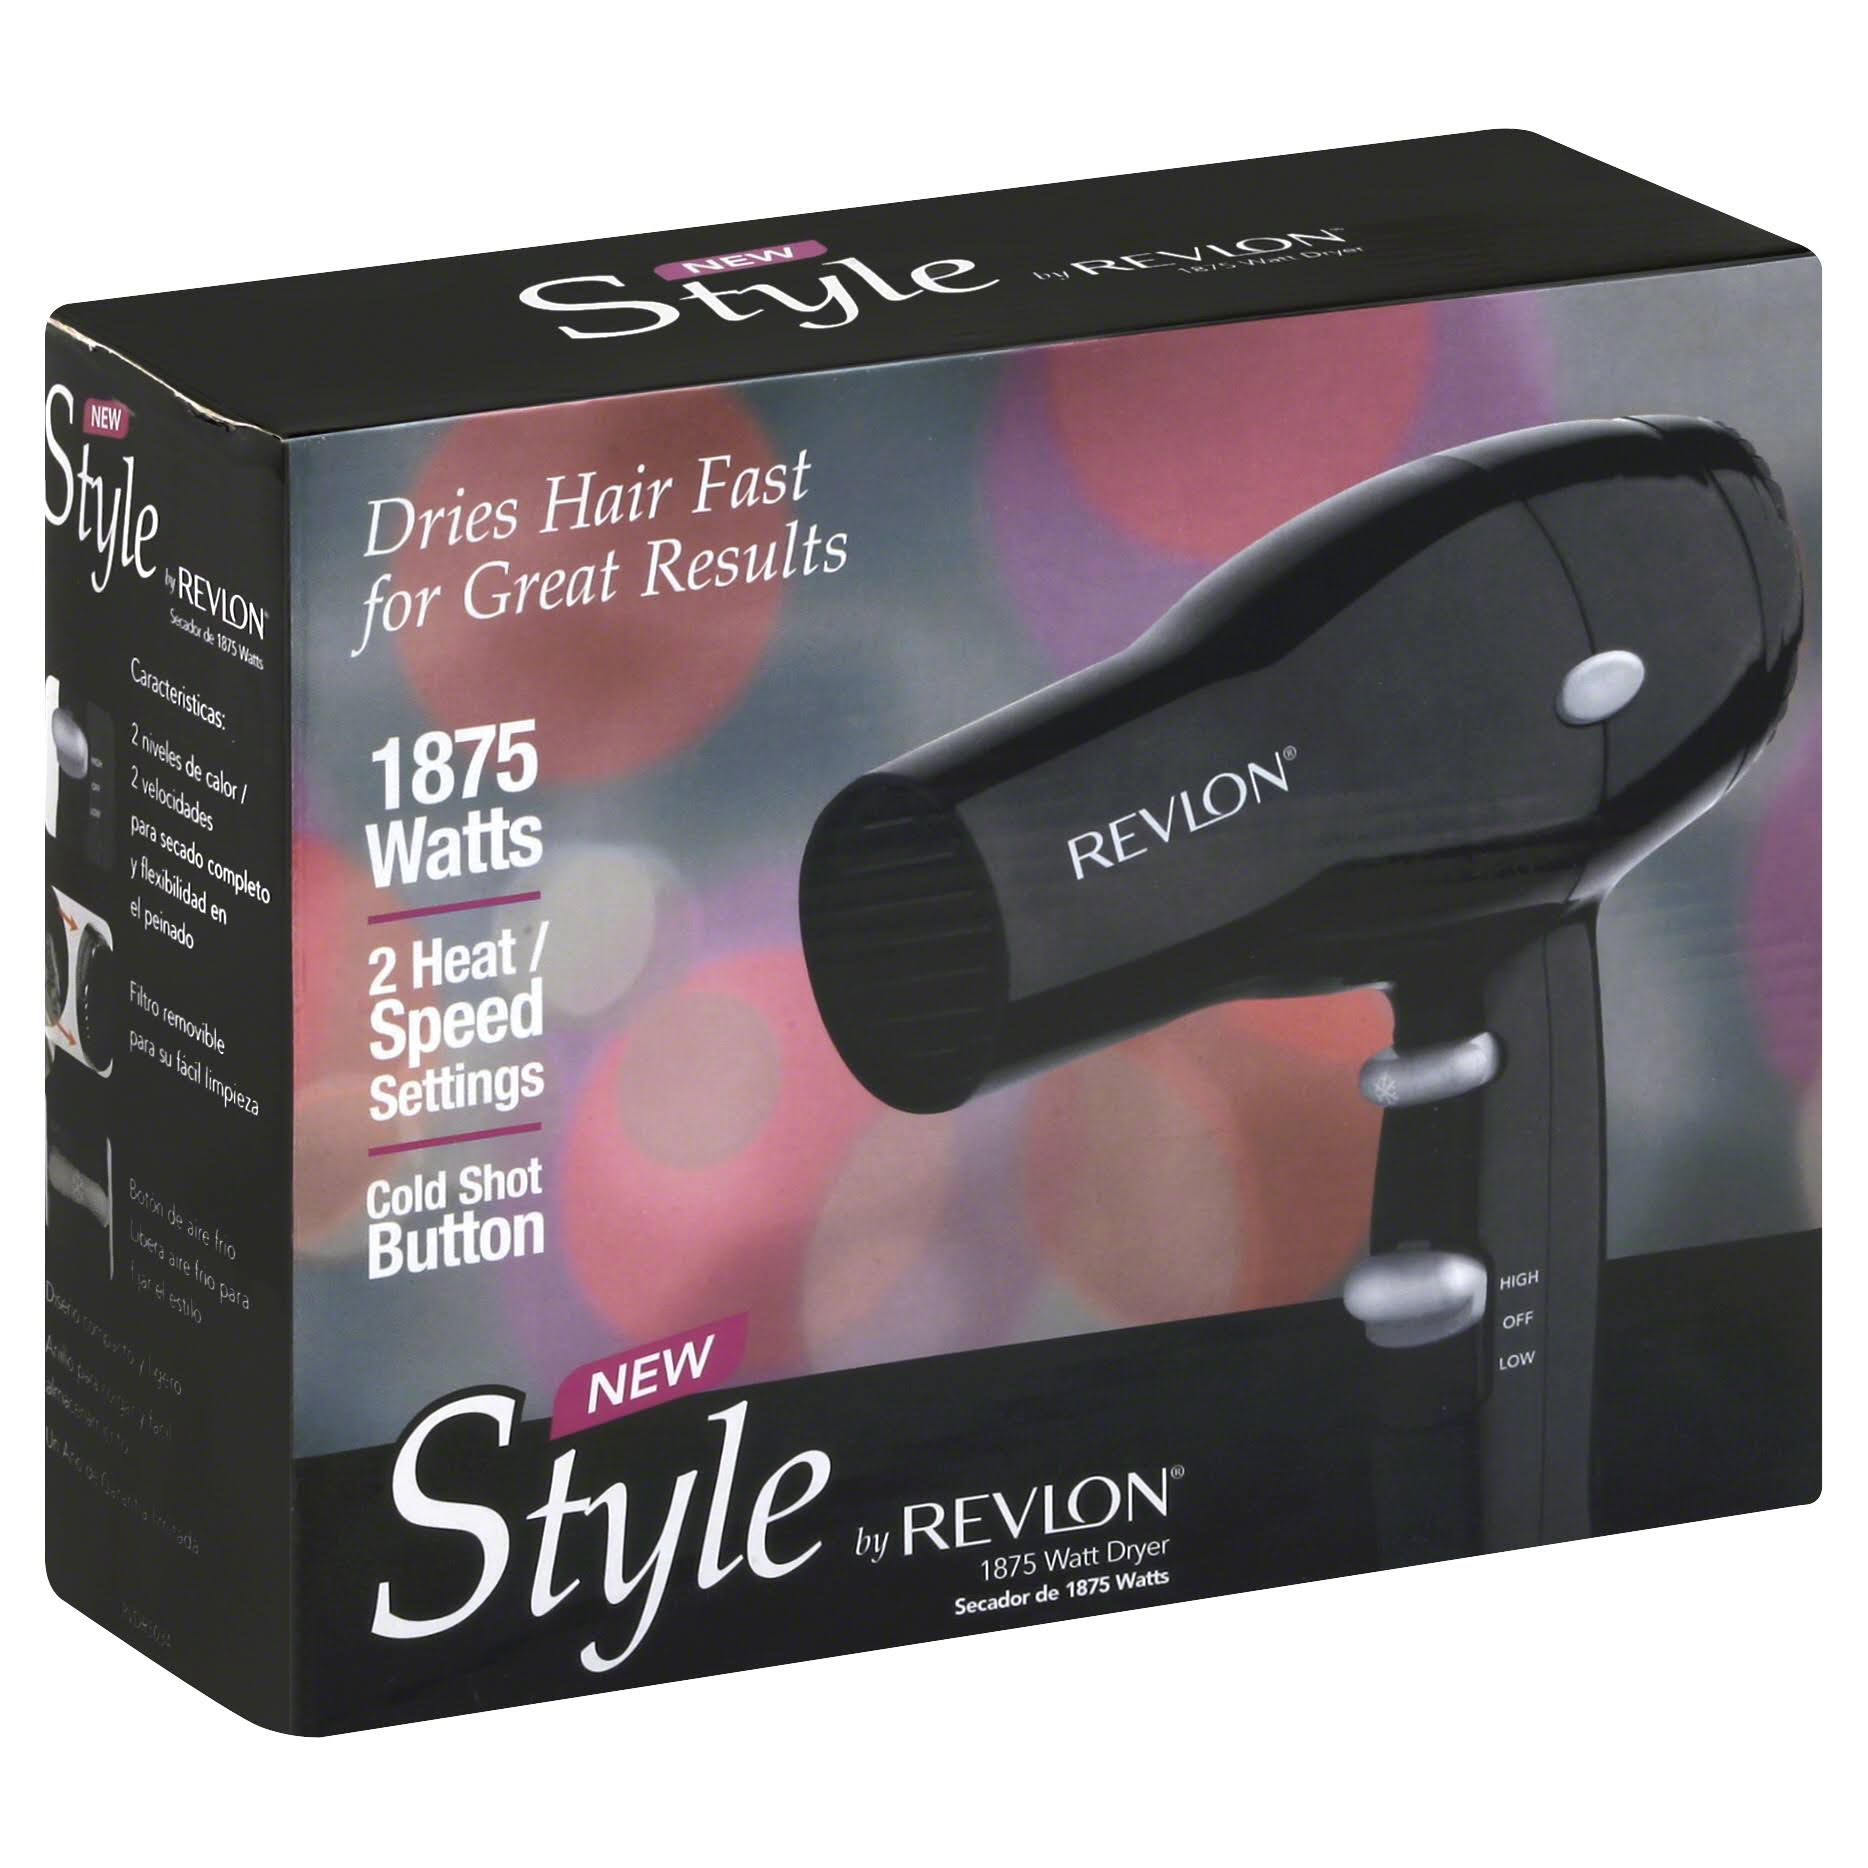 Revlon New Style Compact Travel Hair Dryer - Black, 1875W